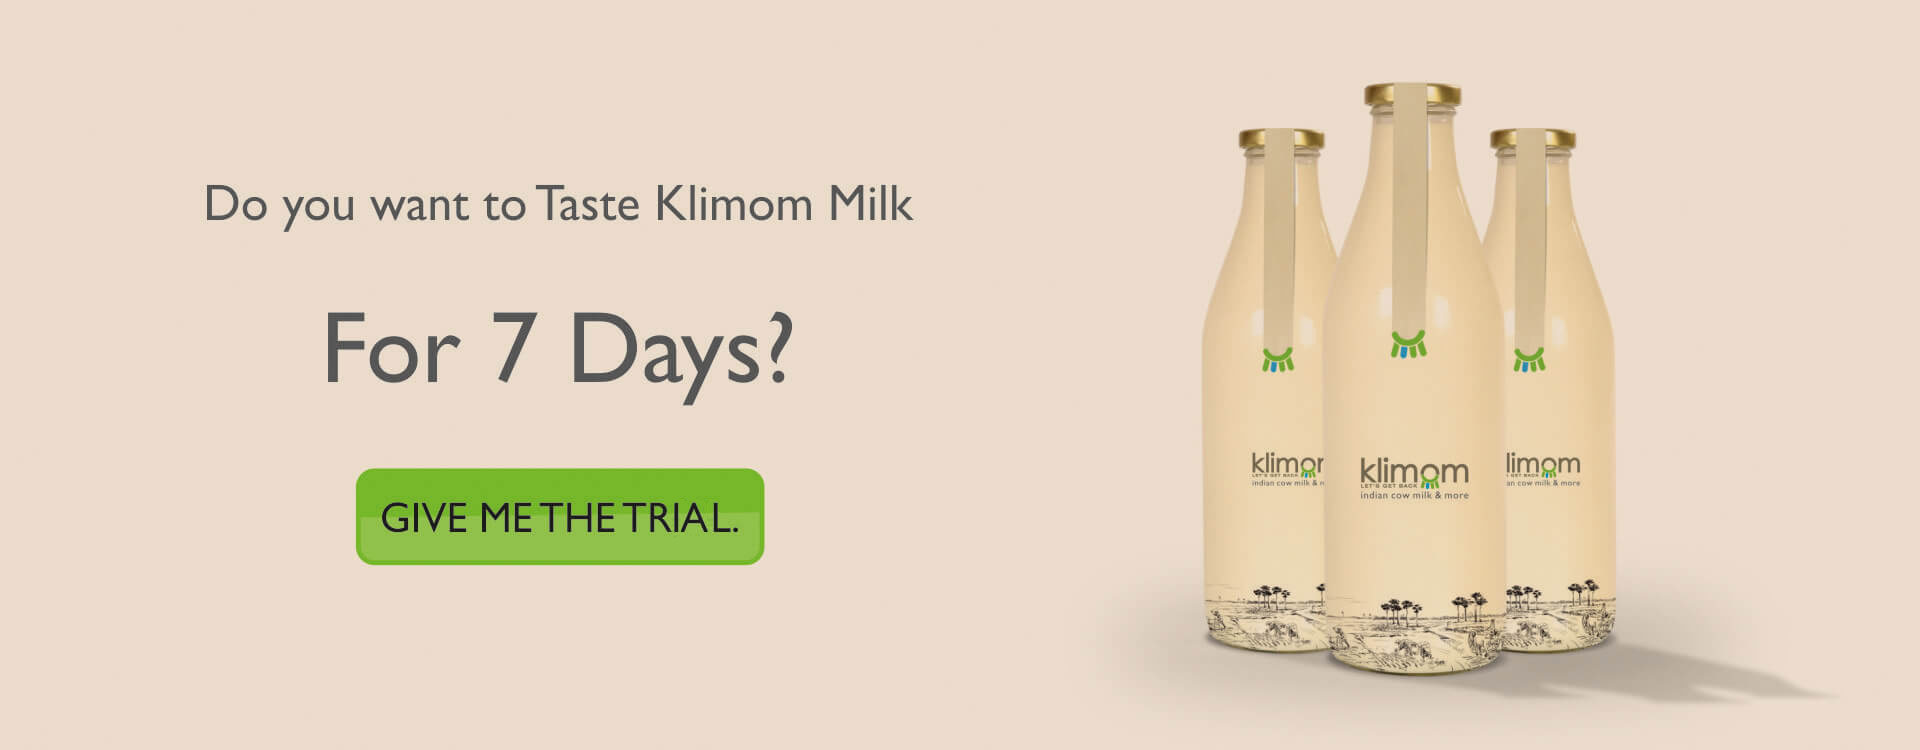 Desi Indian Cow milk in Hyderabad | Klimom A2 milk